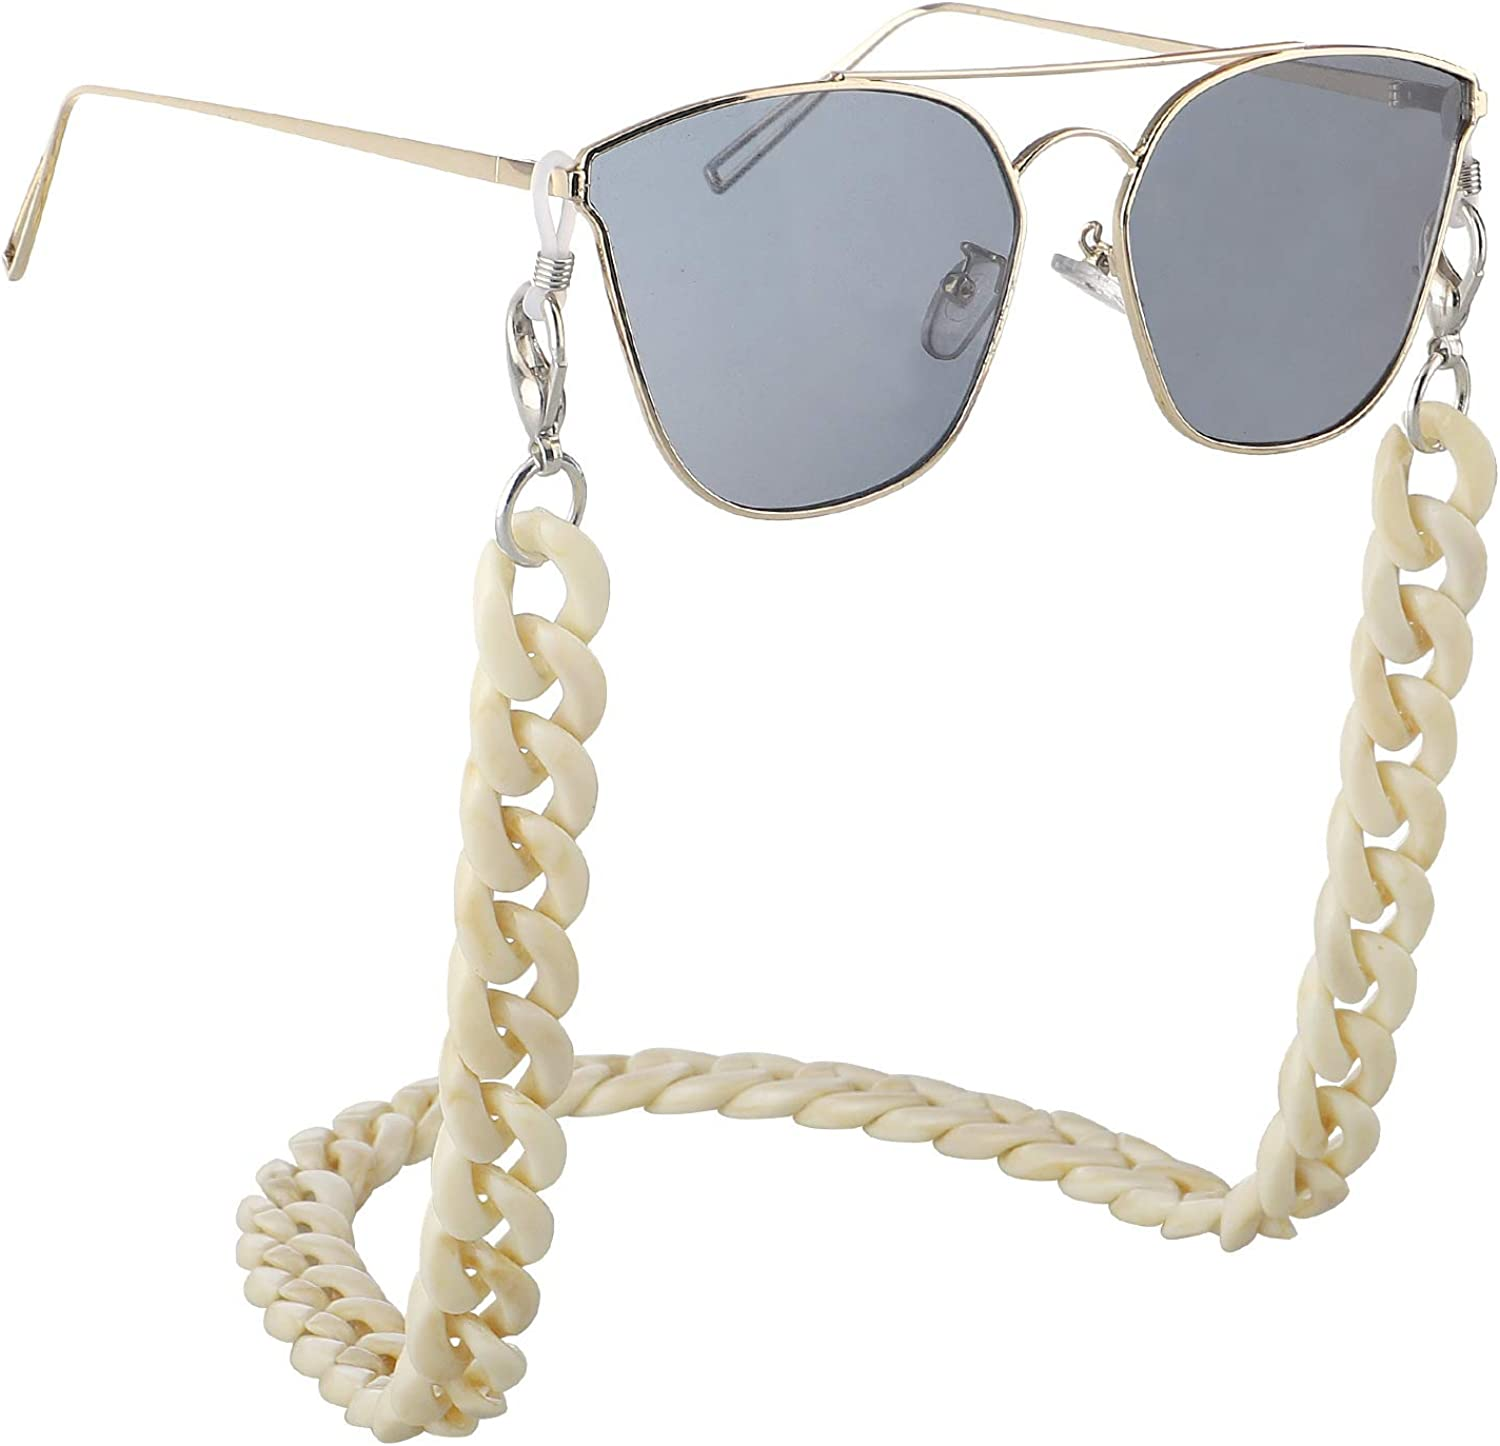 Fashion Award Twist Sale Special Price Link Acrylic Sunglasses Eyegl Marble Chain Texture